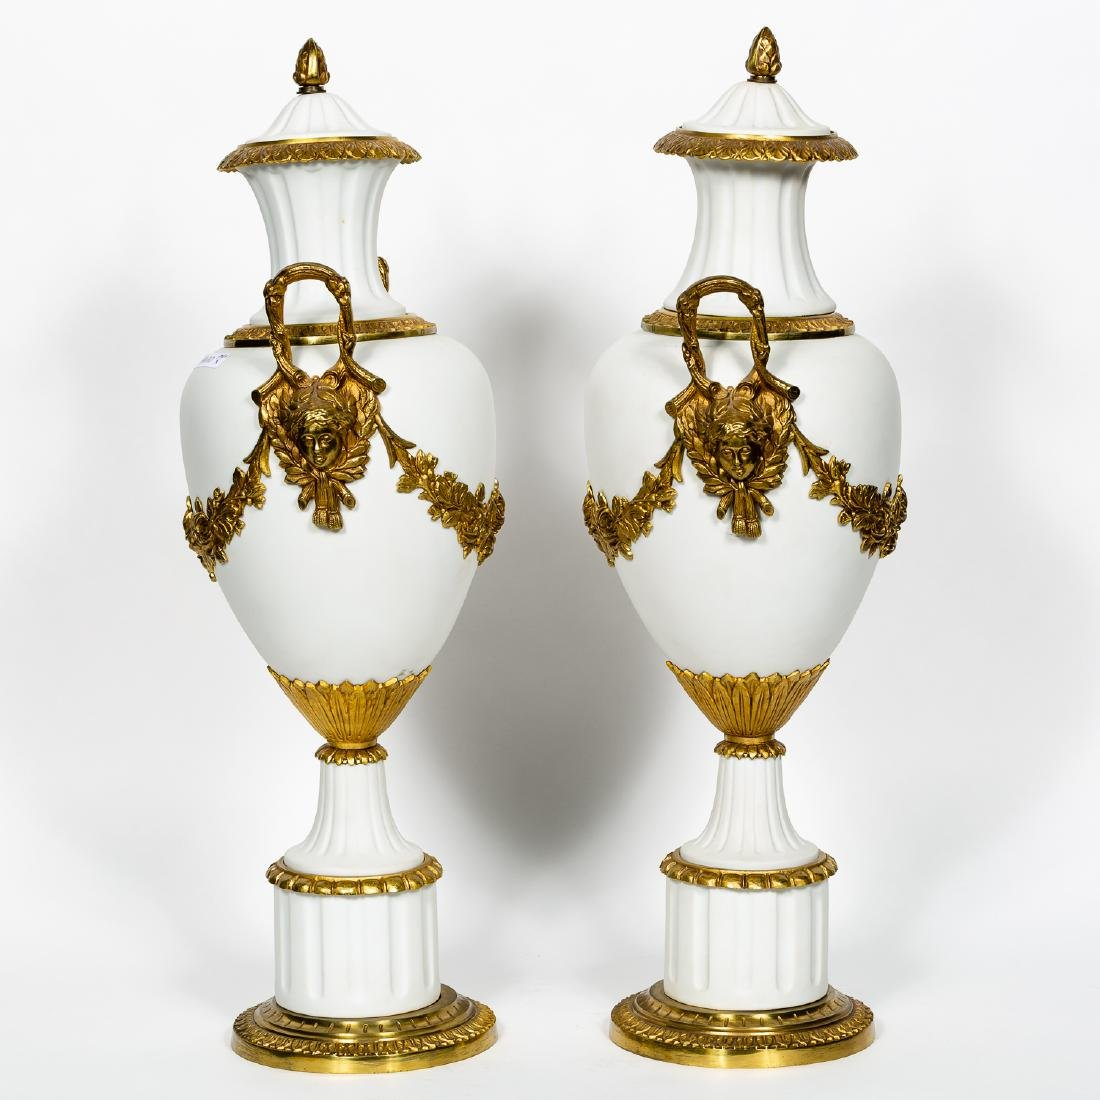 Pair of Neoclassical Bisque & Brass Accented Urns - 3